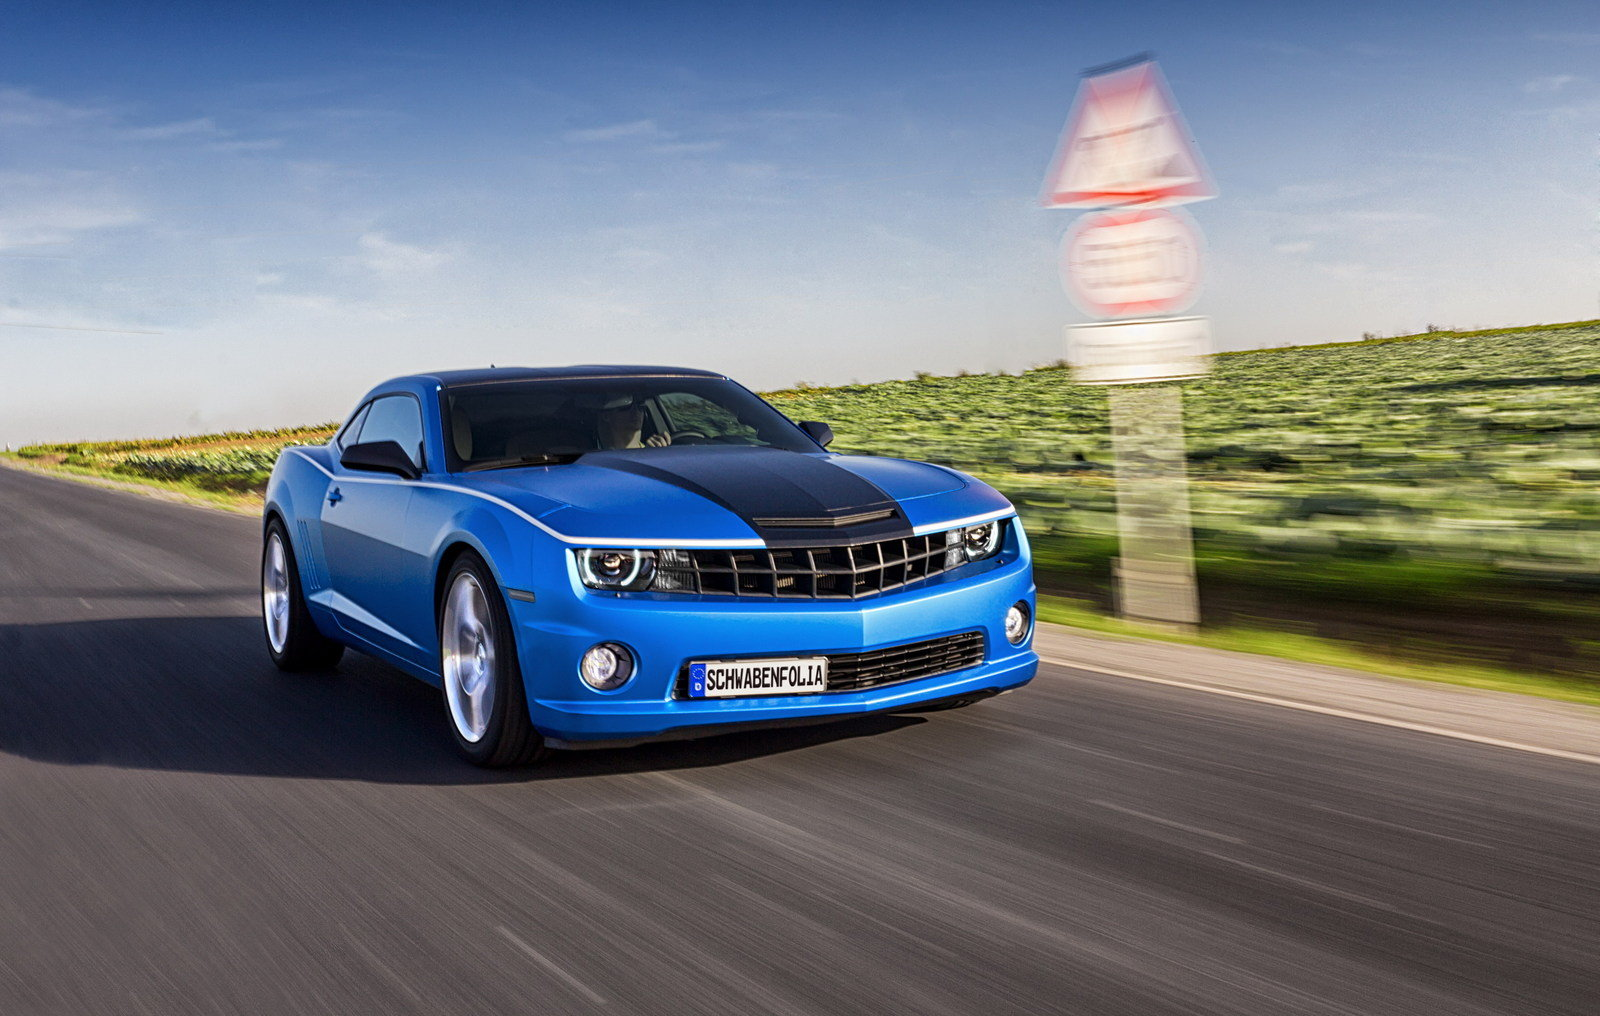 2013 chevrolet camaro ss by schwabenfolia review top speed. Black Bedroom Furniture Sets. Home Design Ideas